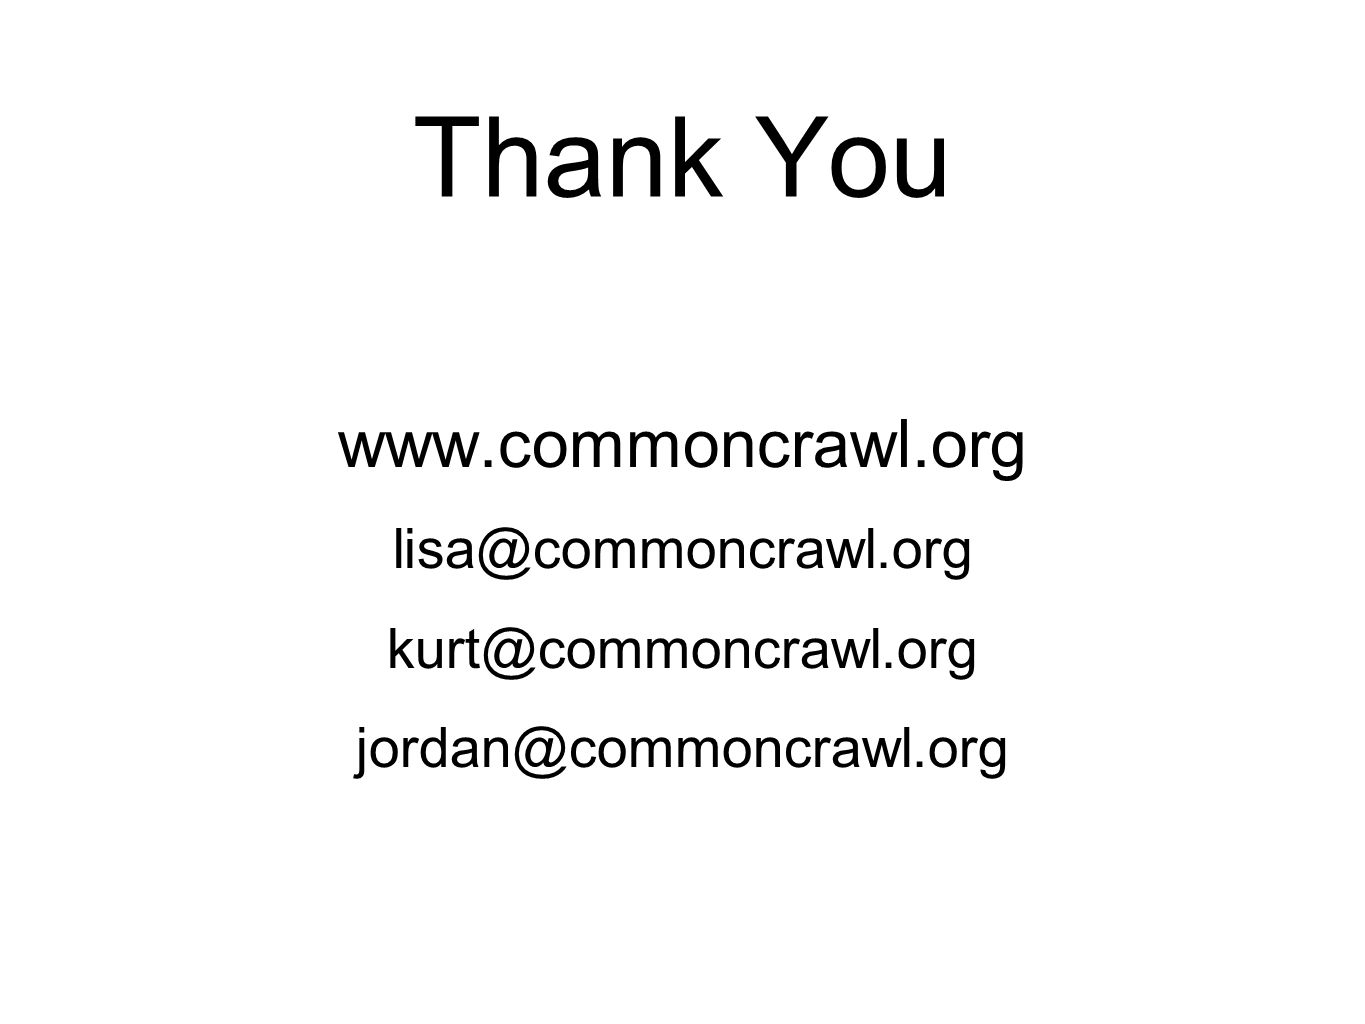 Thank You www.commoncrawl.org lisa@commoncrawl.org kurt@commoncrawl.org jordan@commoncrawl.org